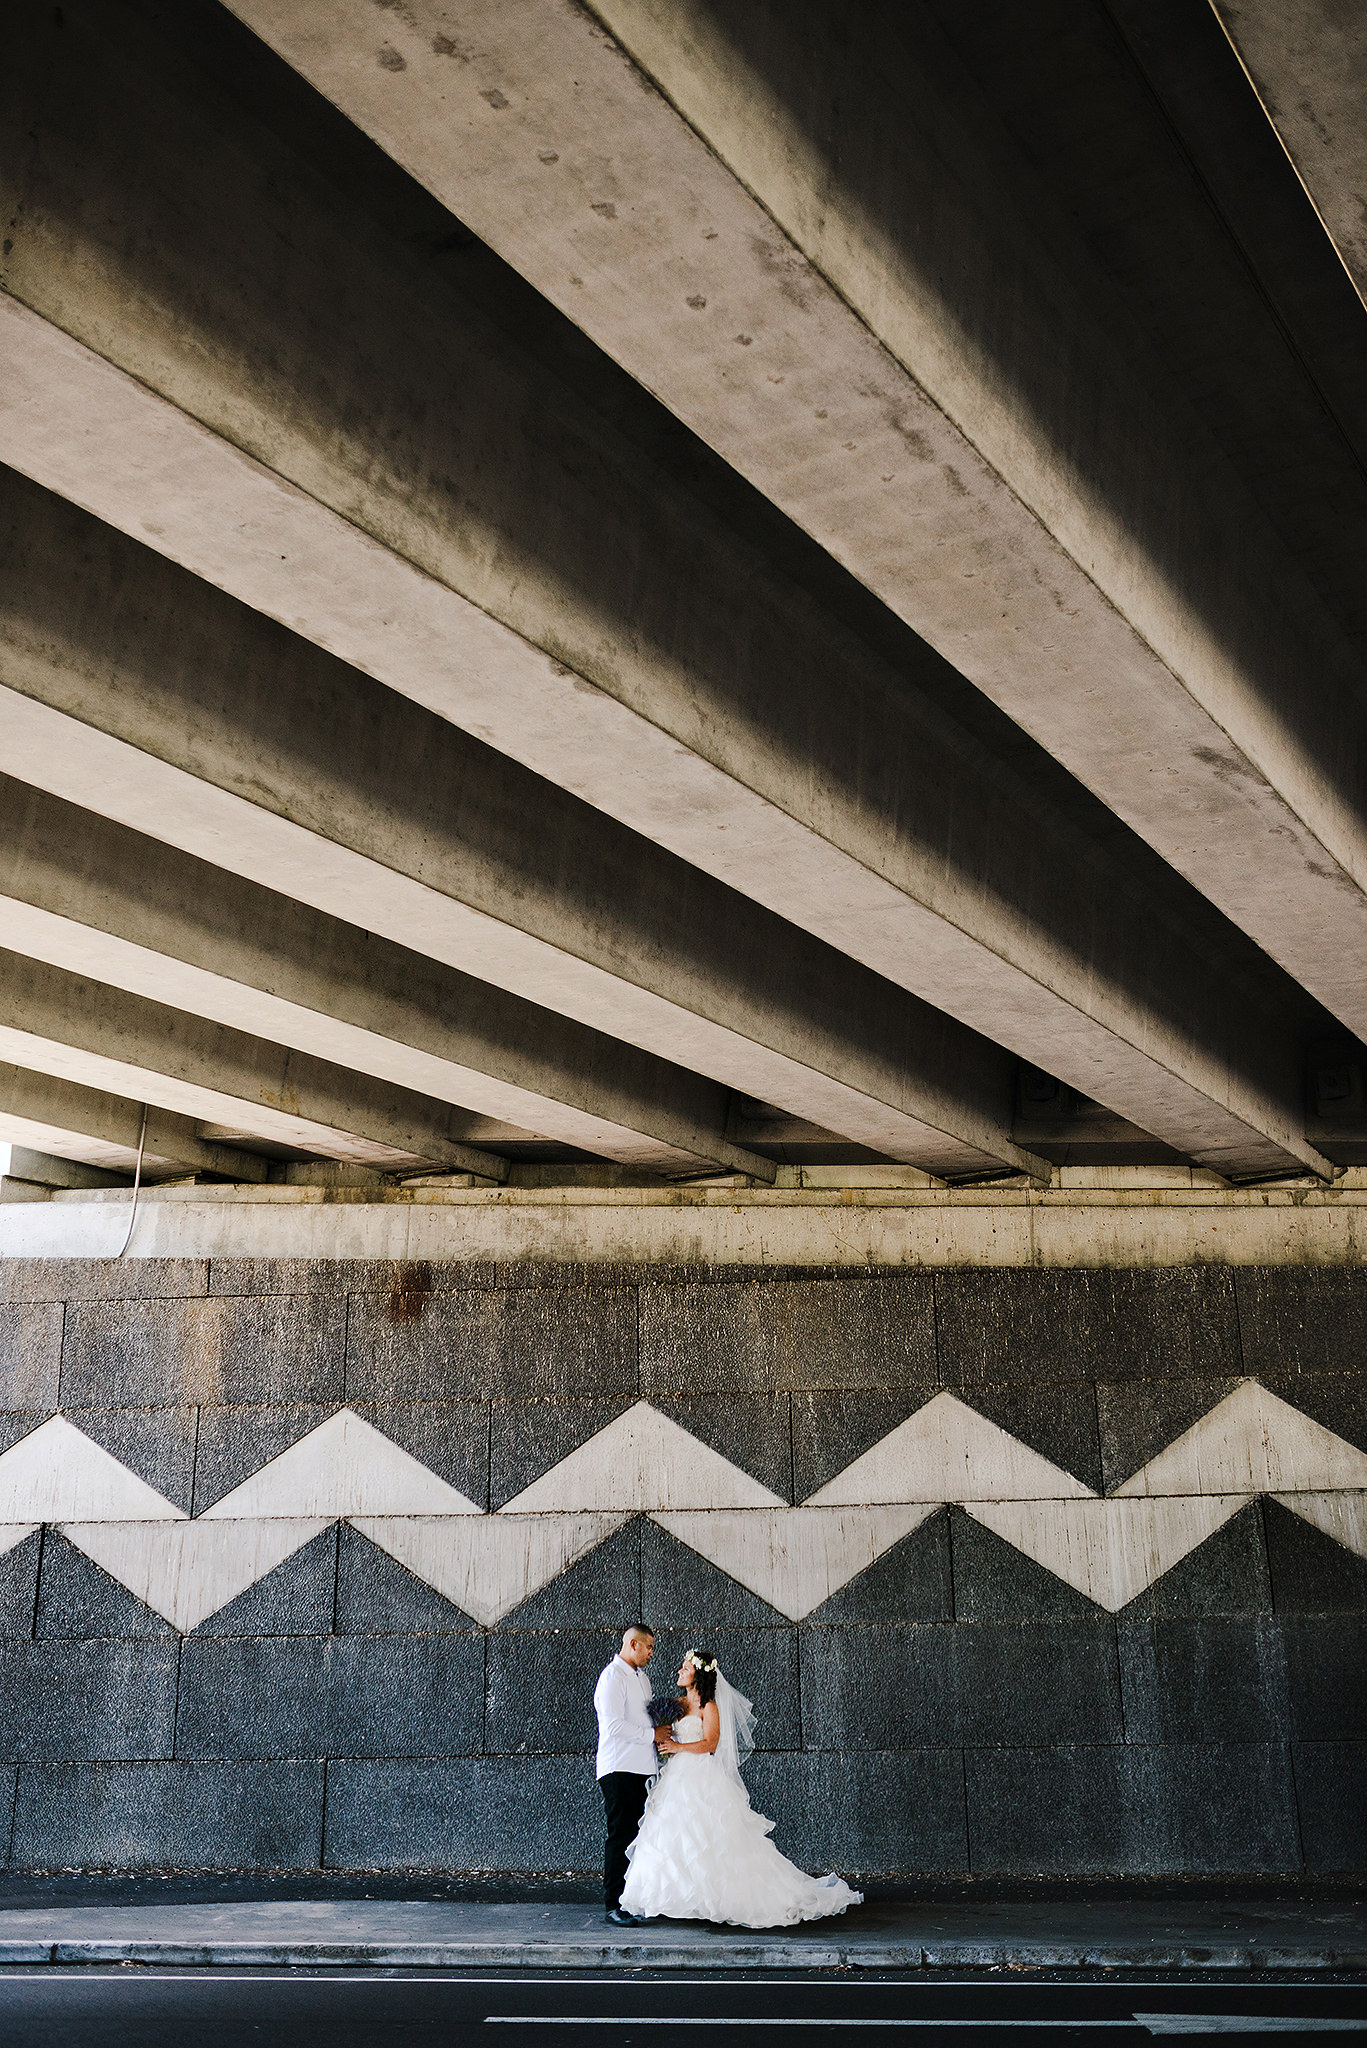 9 Zig Zag underpass Auckland Wedding Architecture.JPG